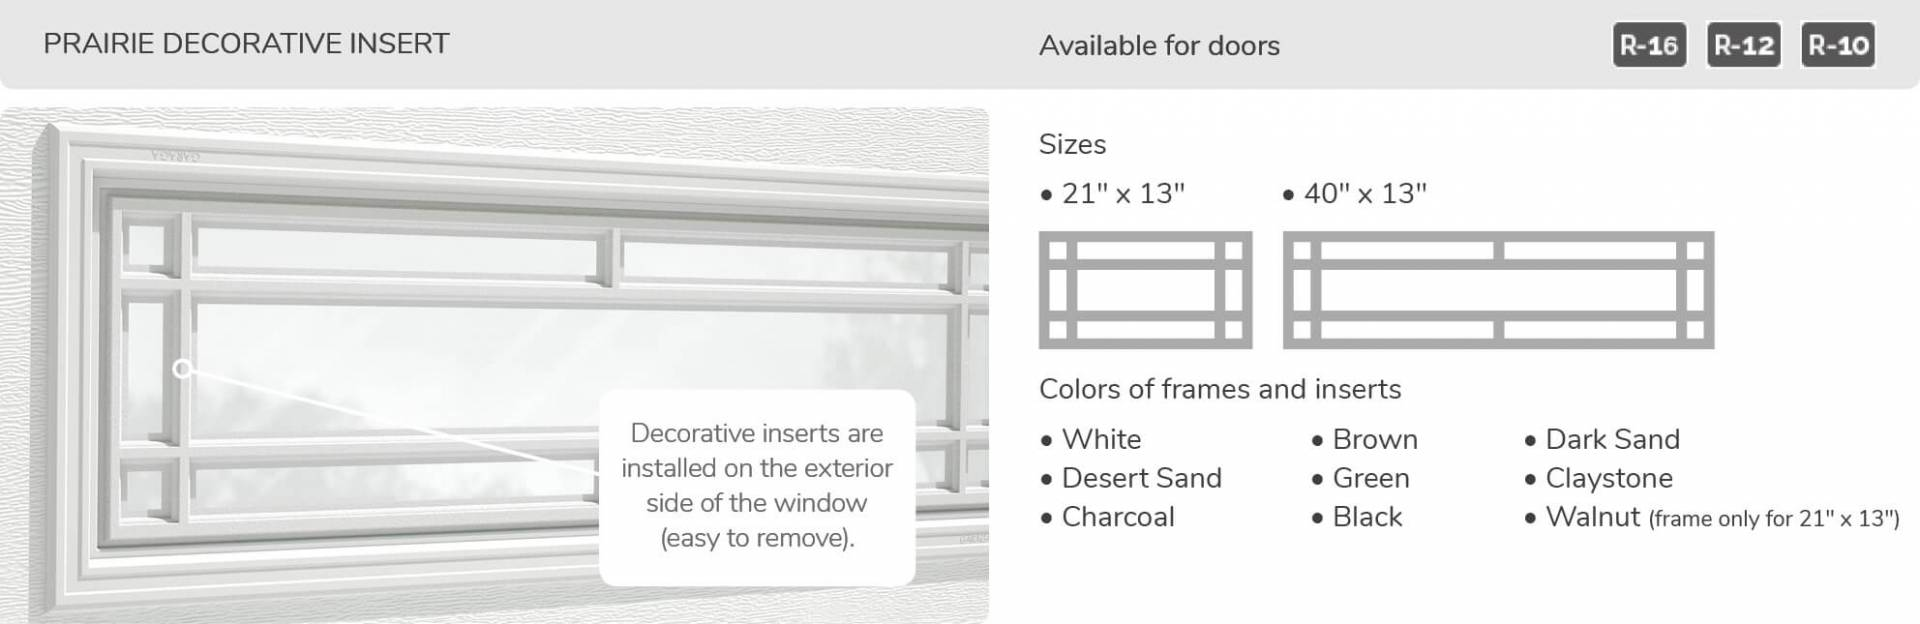 Prairie Decorative Inserts, 21' x 13' and 40' x 13', available for doors R-16, R-12, R-10